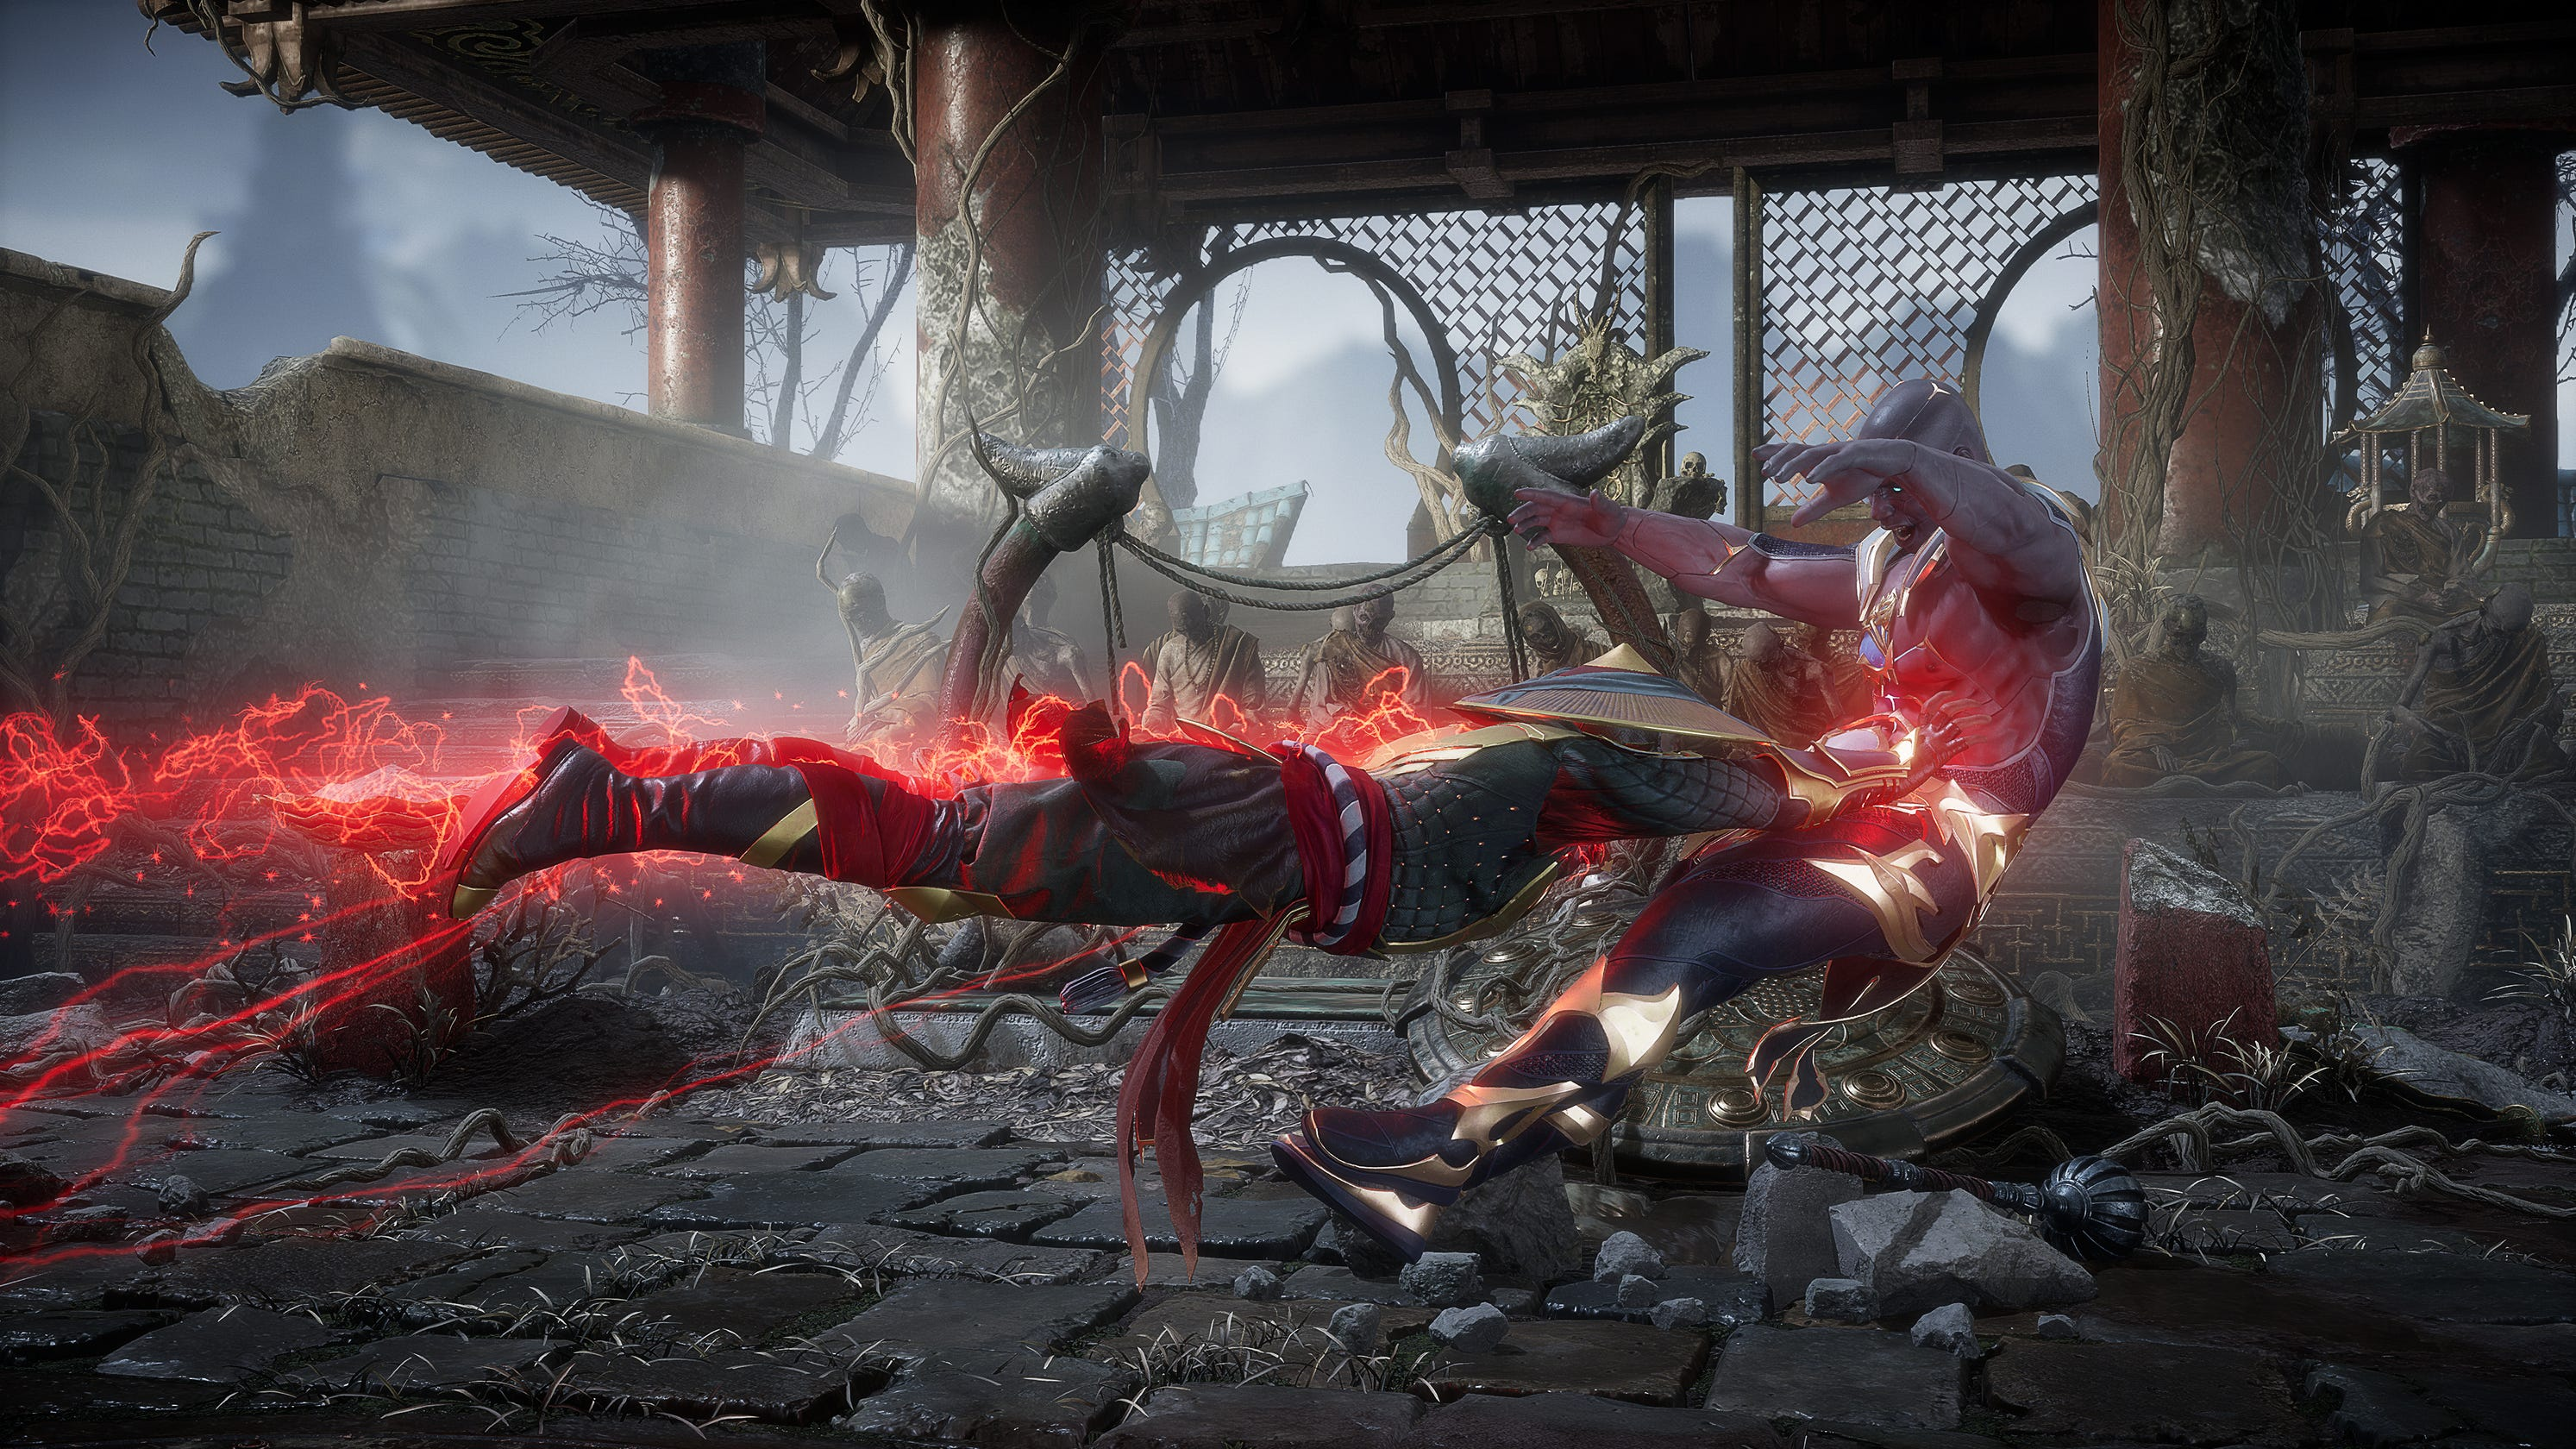 Mortal Kombat 11': 5 things you don't know about the video game